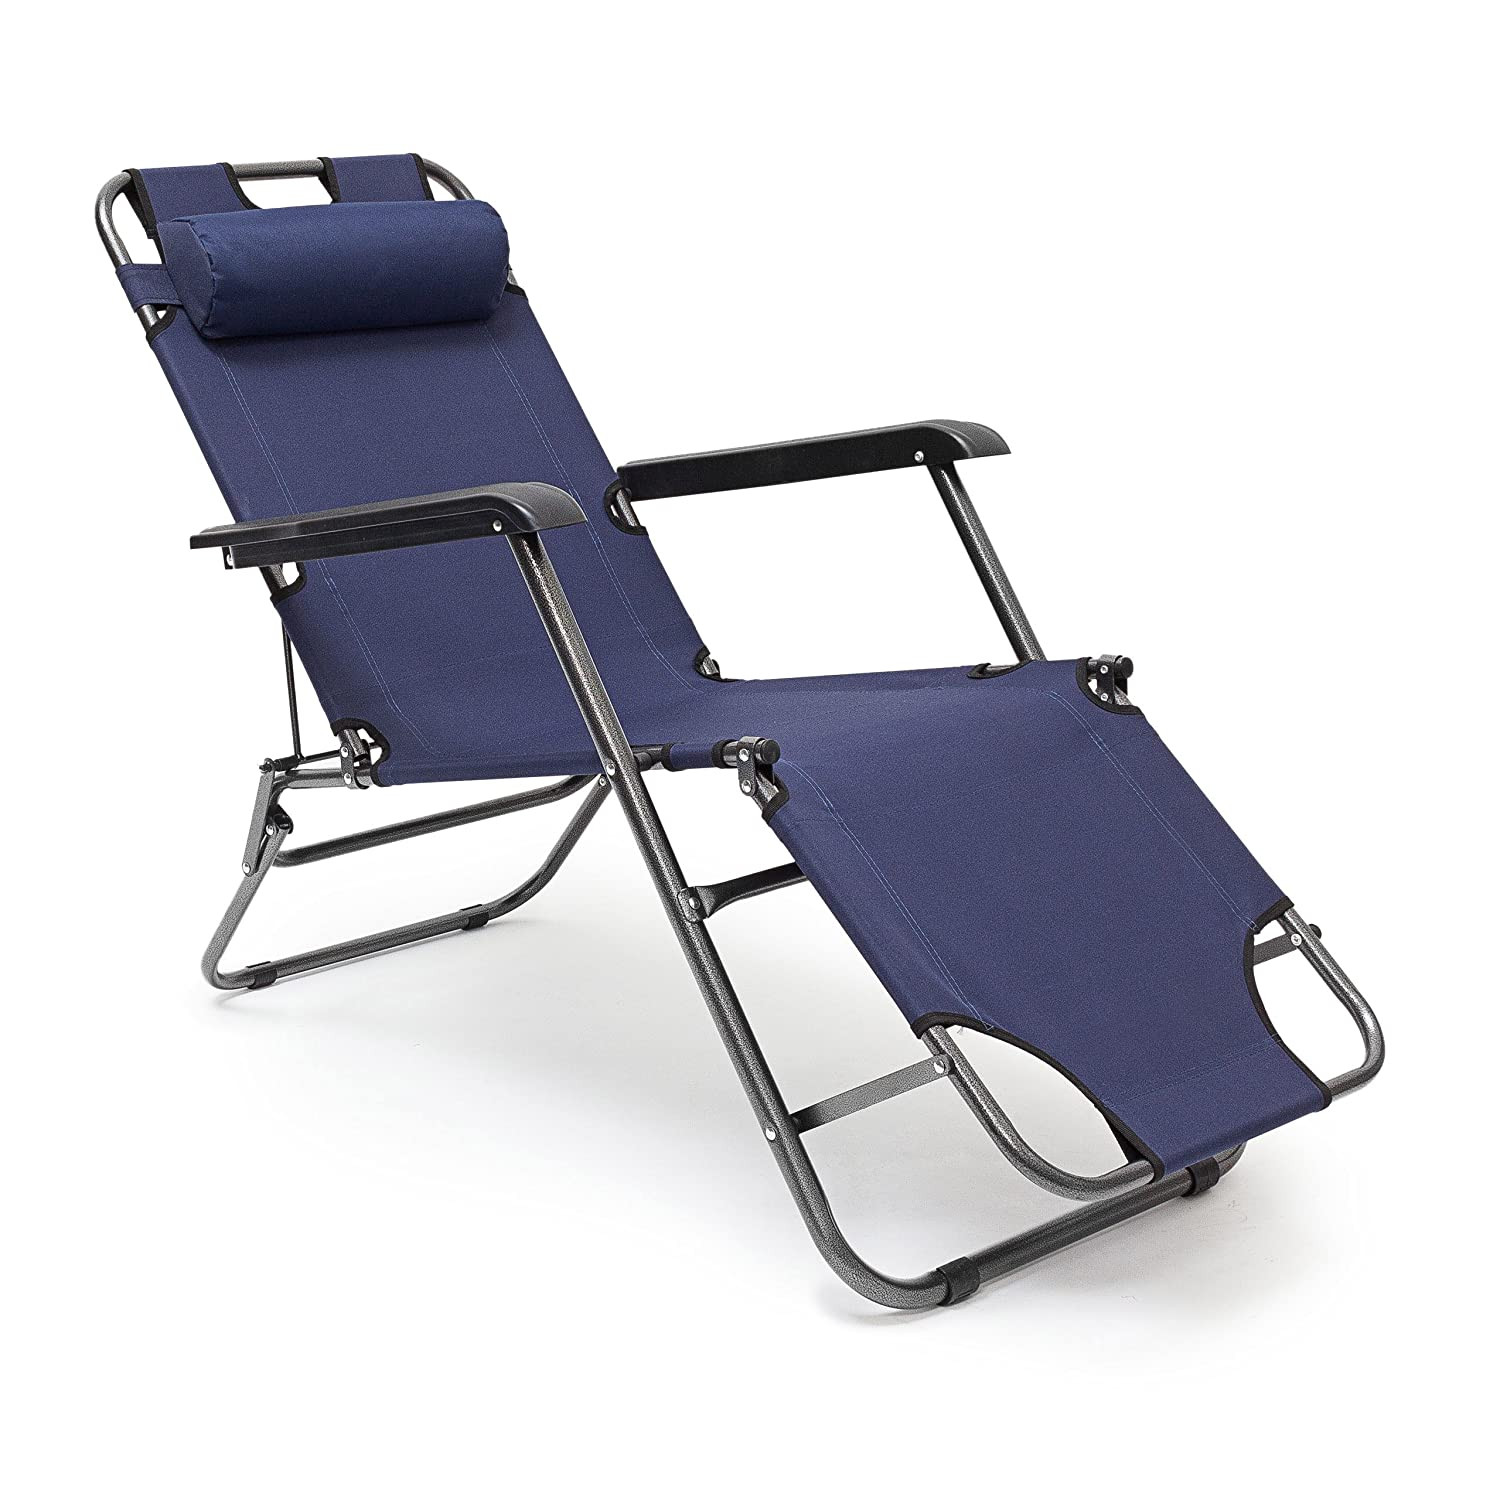 Relaxdays 10020080 chaise longue de camping pliante for Chaise longue pliante camping